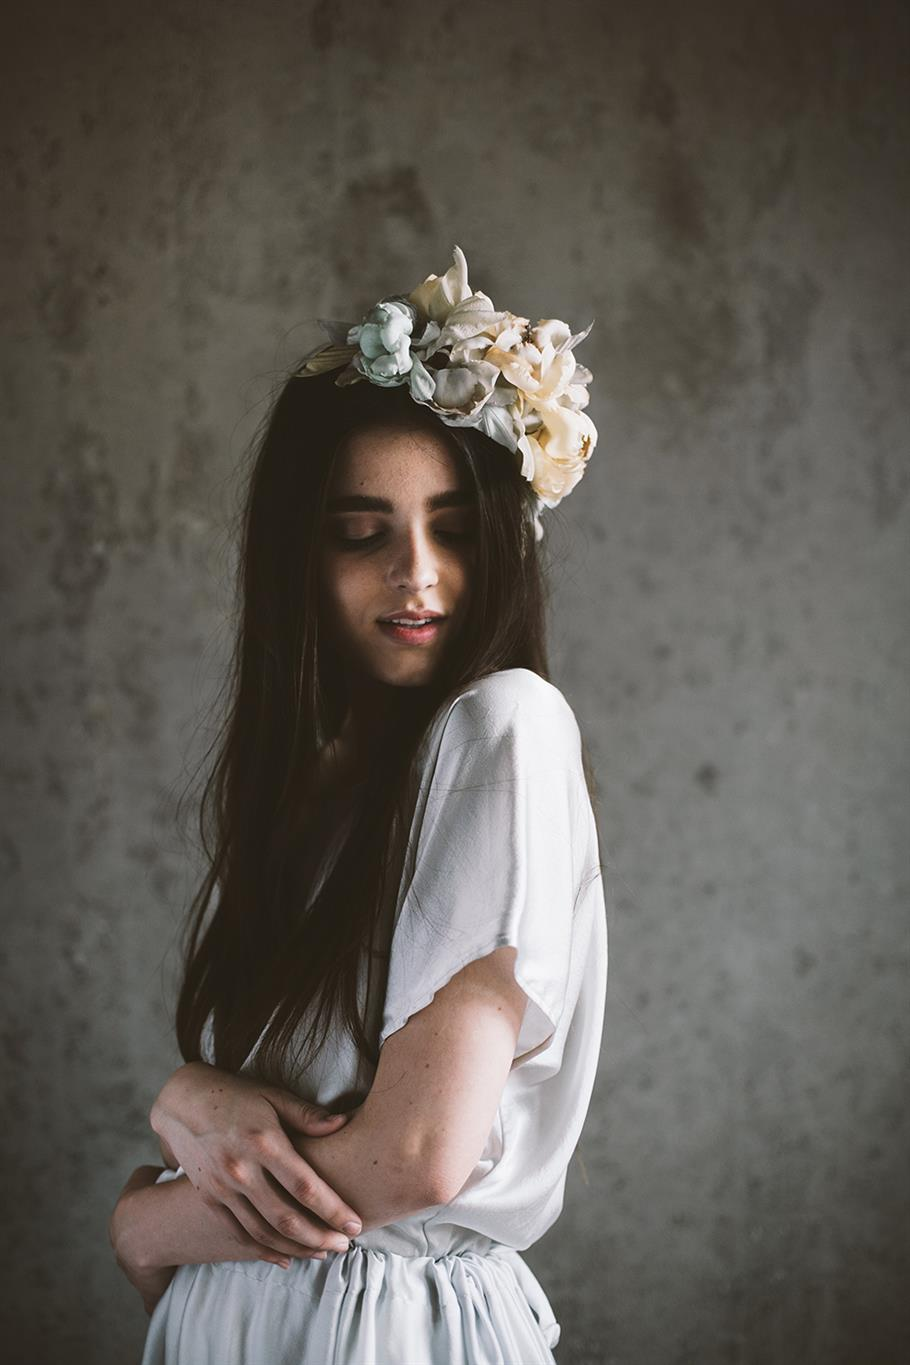 Bridal Flower Crown from Mignonne Handmade